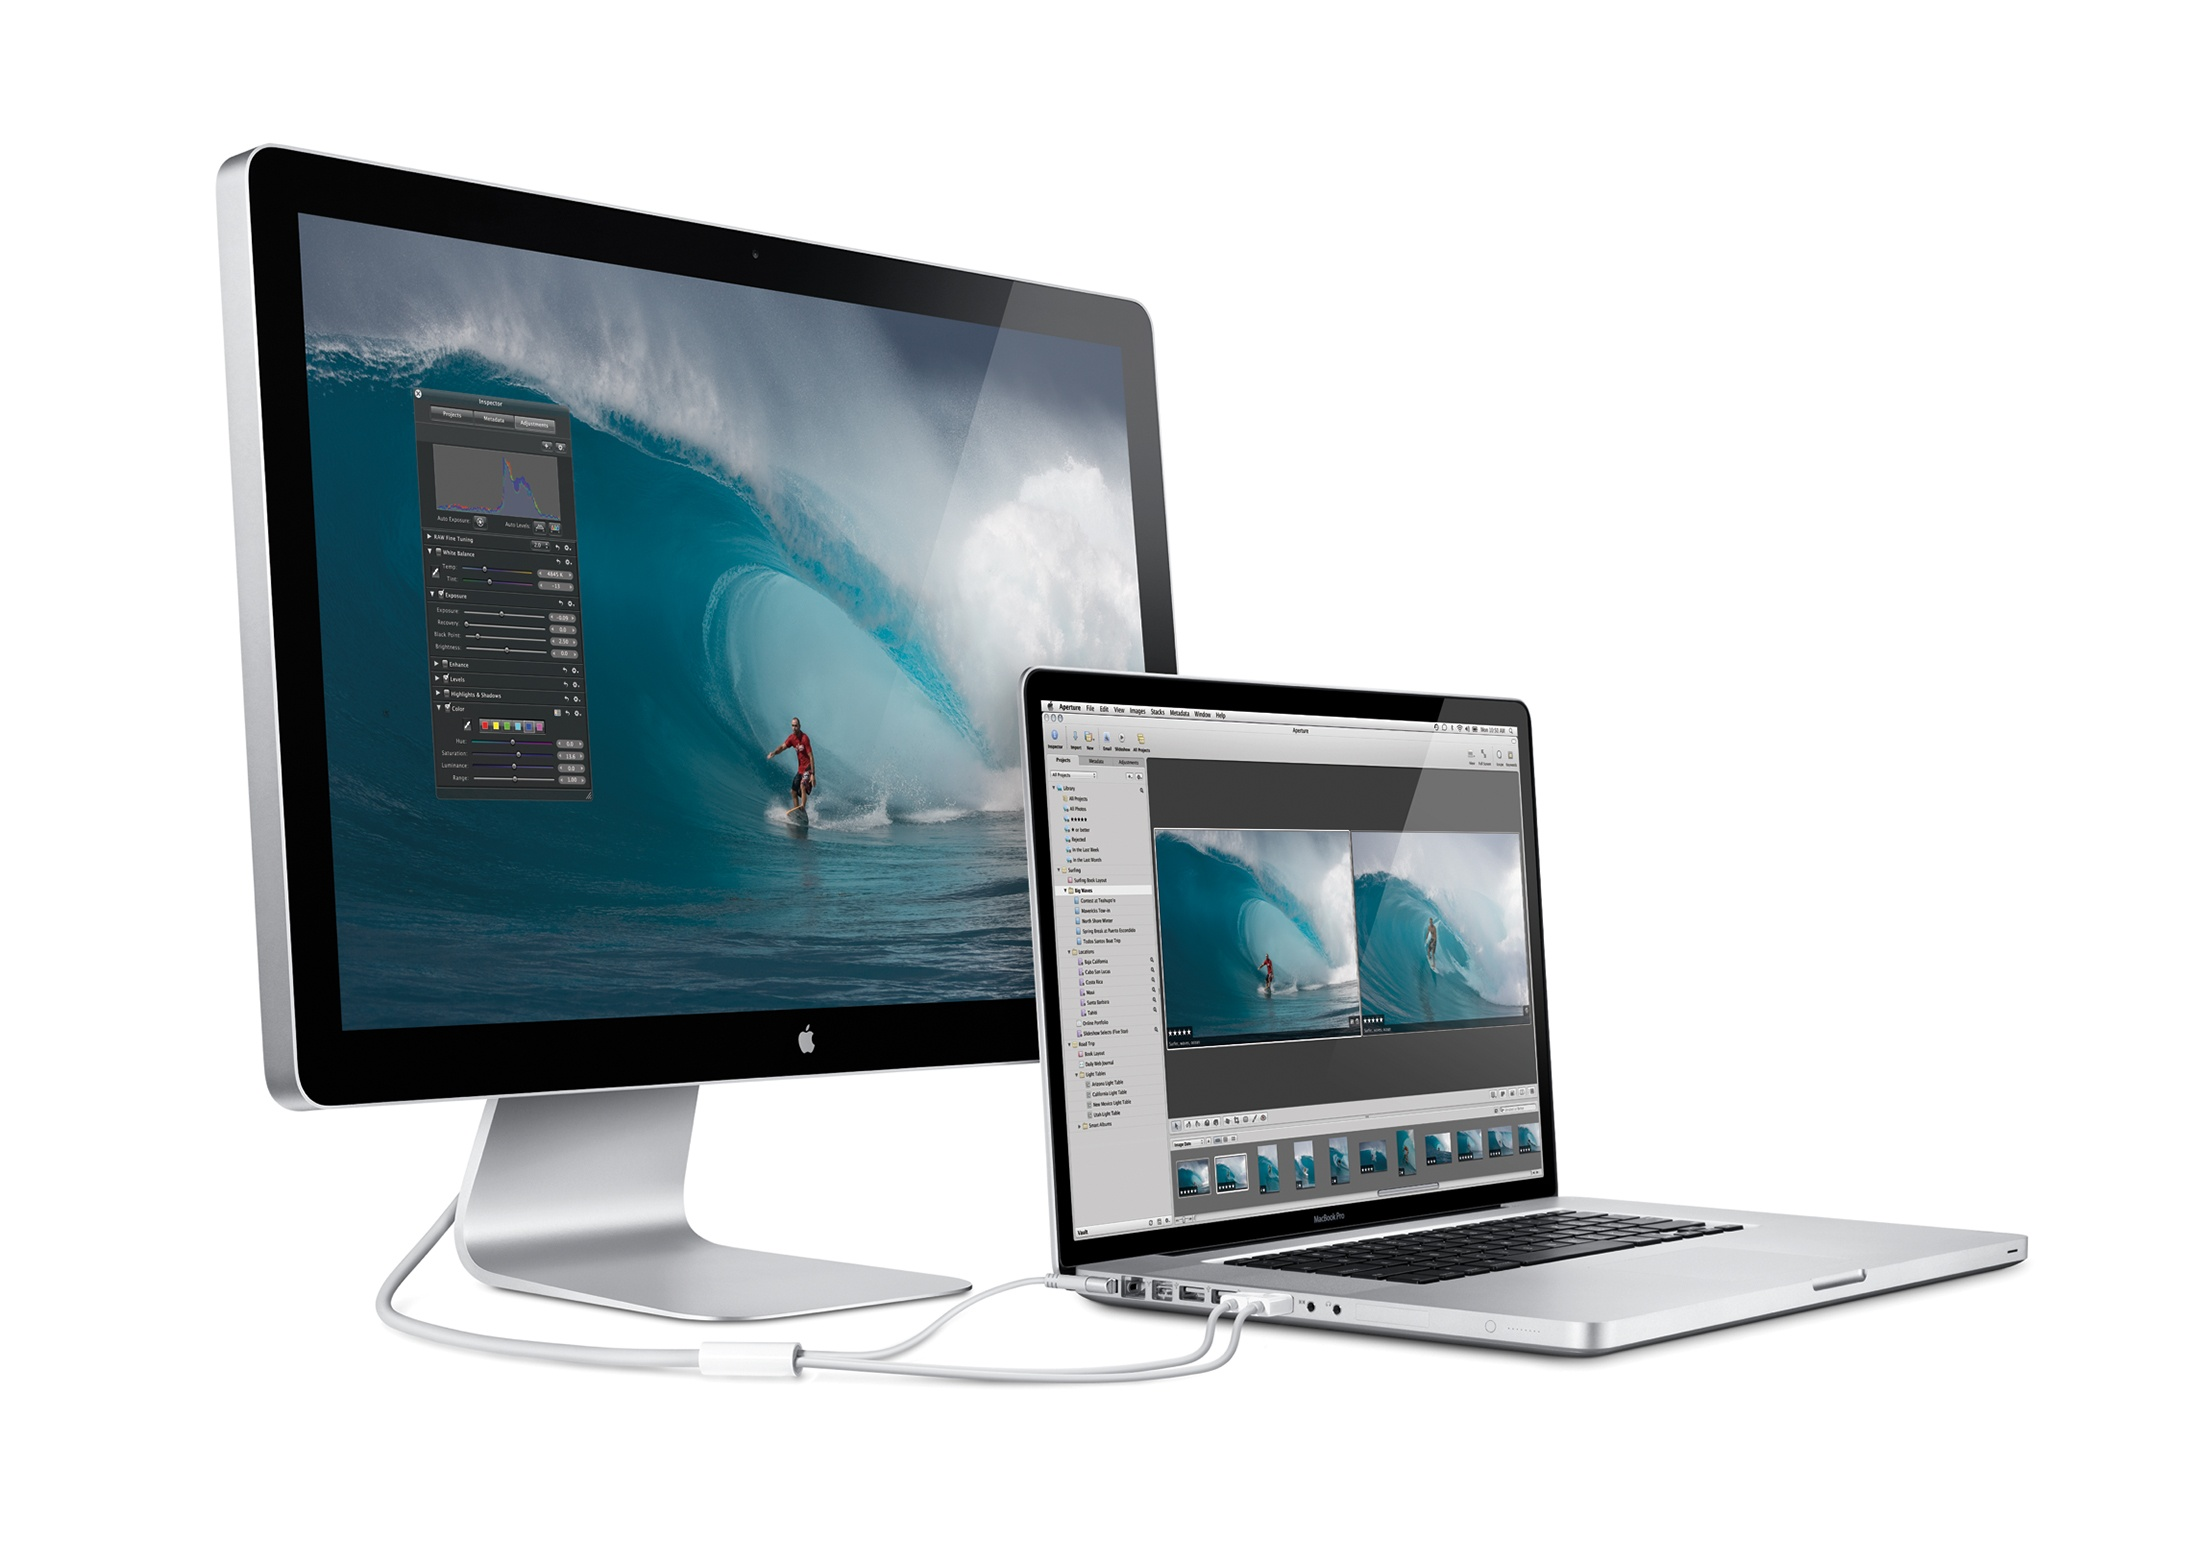 The 17-inch MacBook Pro and 24-inch LED Cinema Display